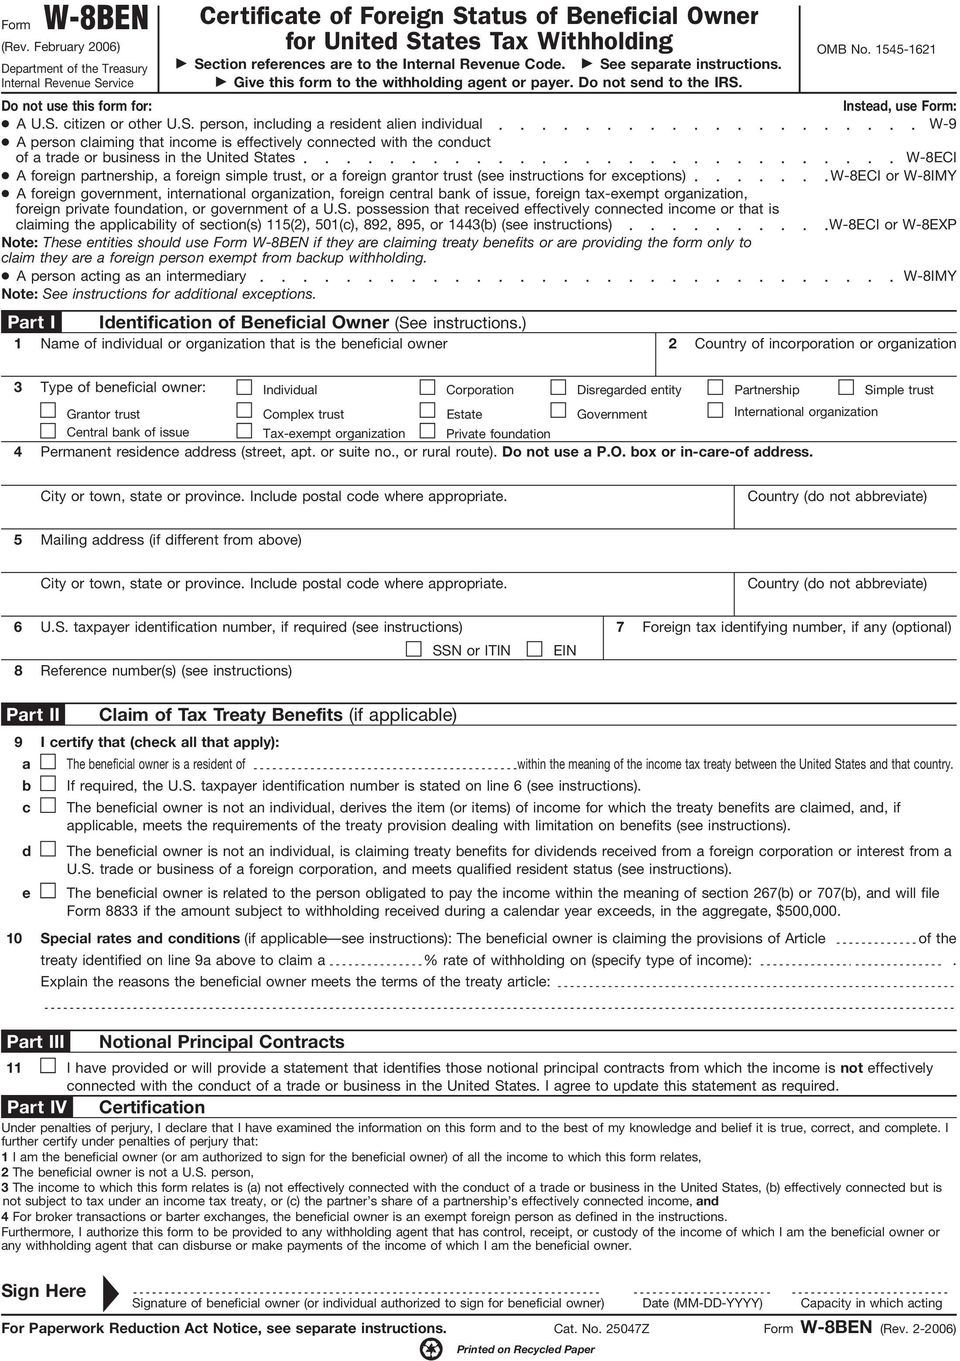 Form W-8BEN Completion & Submission Guidelines for Corbis ...